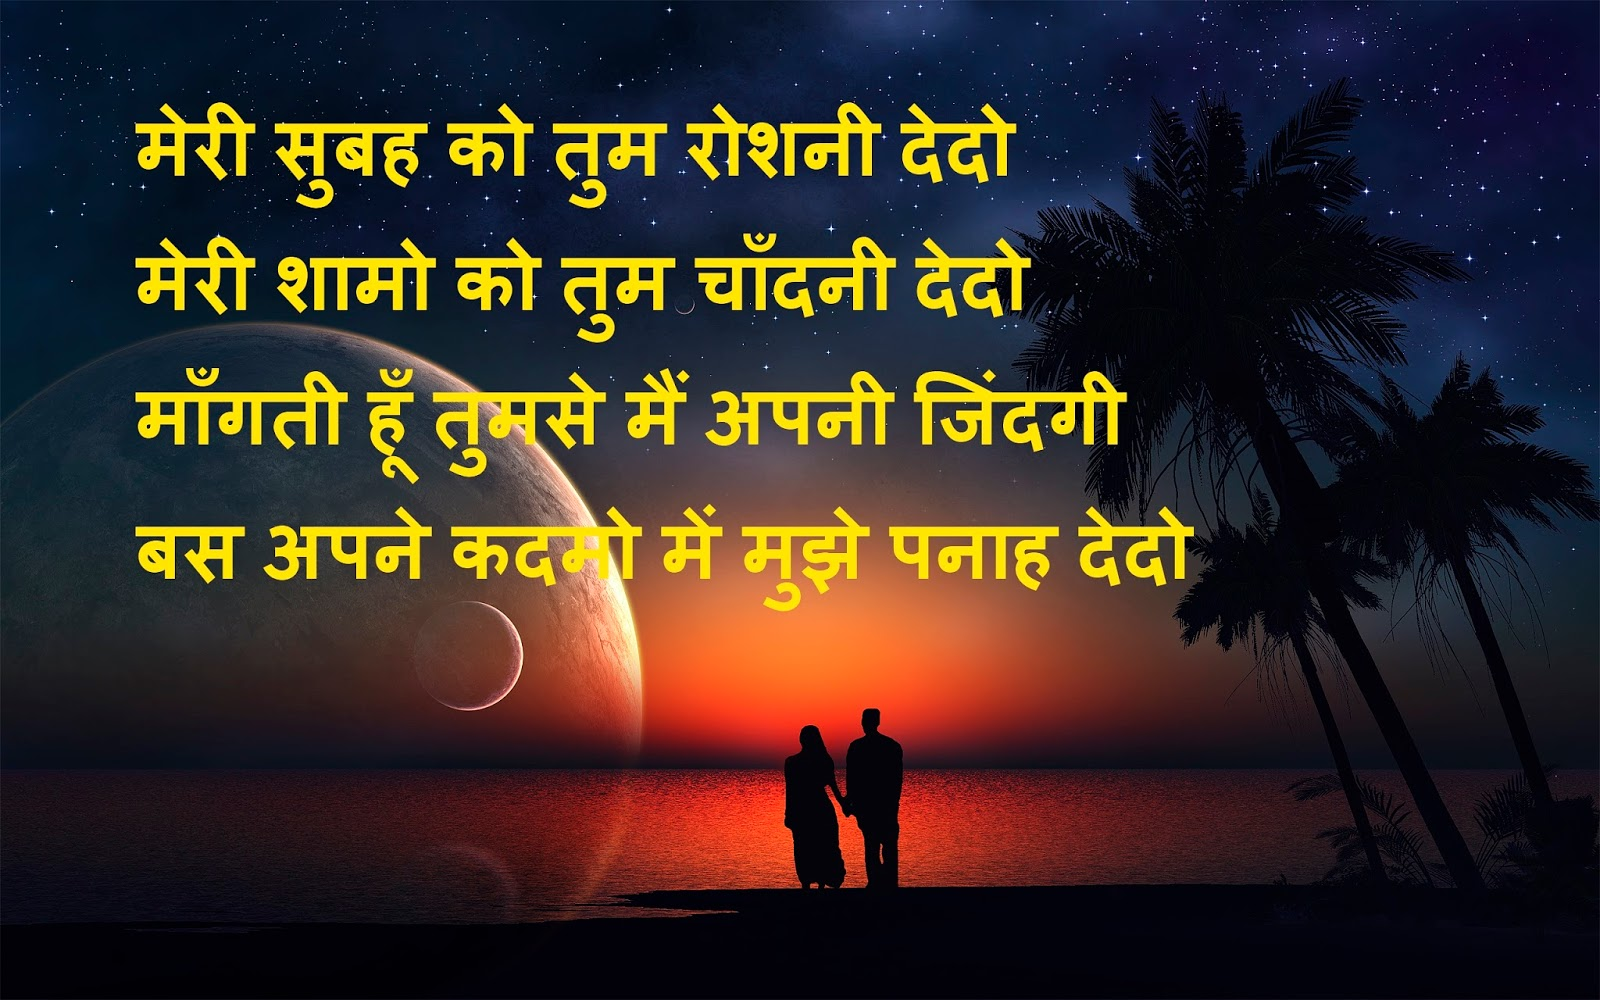 Wallpaper download love shayri - Hd Wallpaper For Desktop Background Love Couple